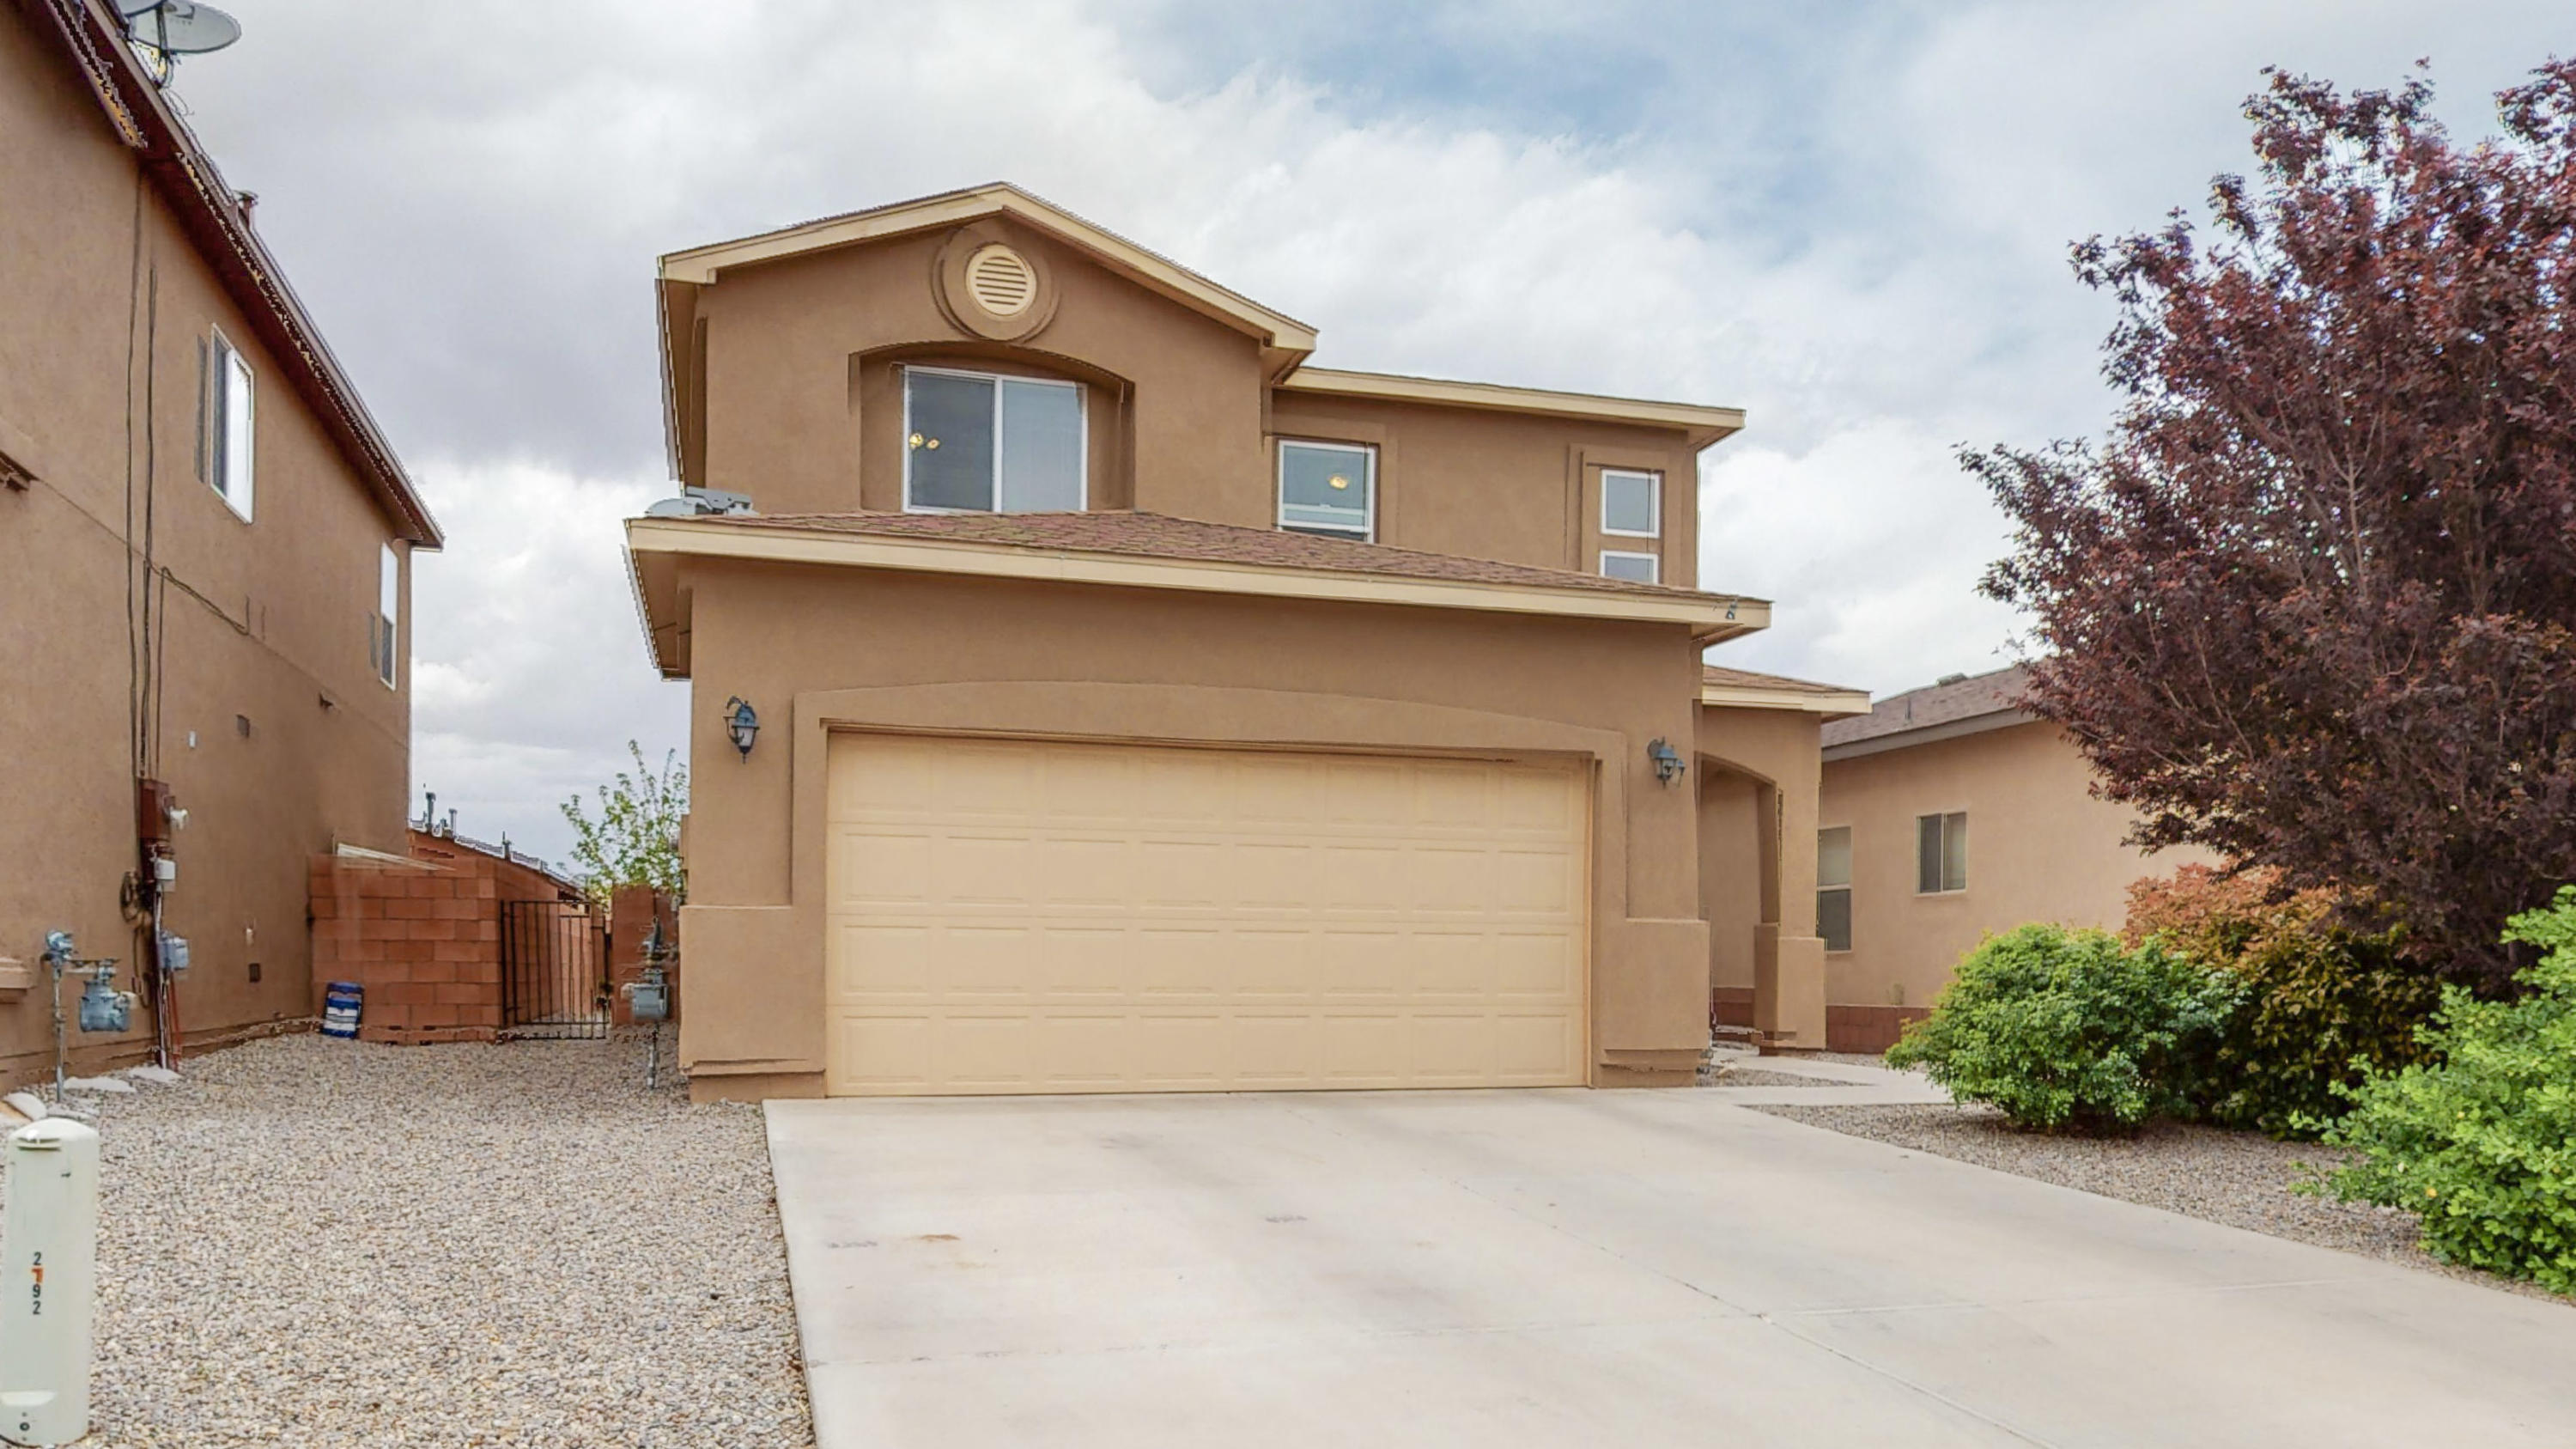 A great 2 story home only 5 years old. 2000 square feet in a great Rio Rancho location.